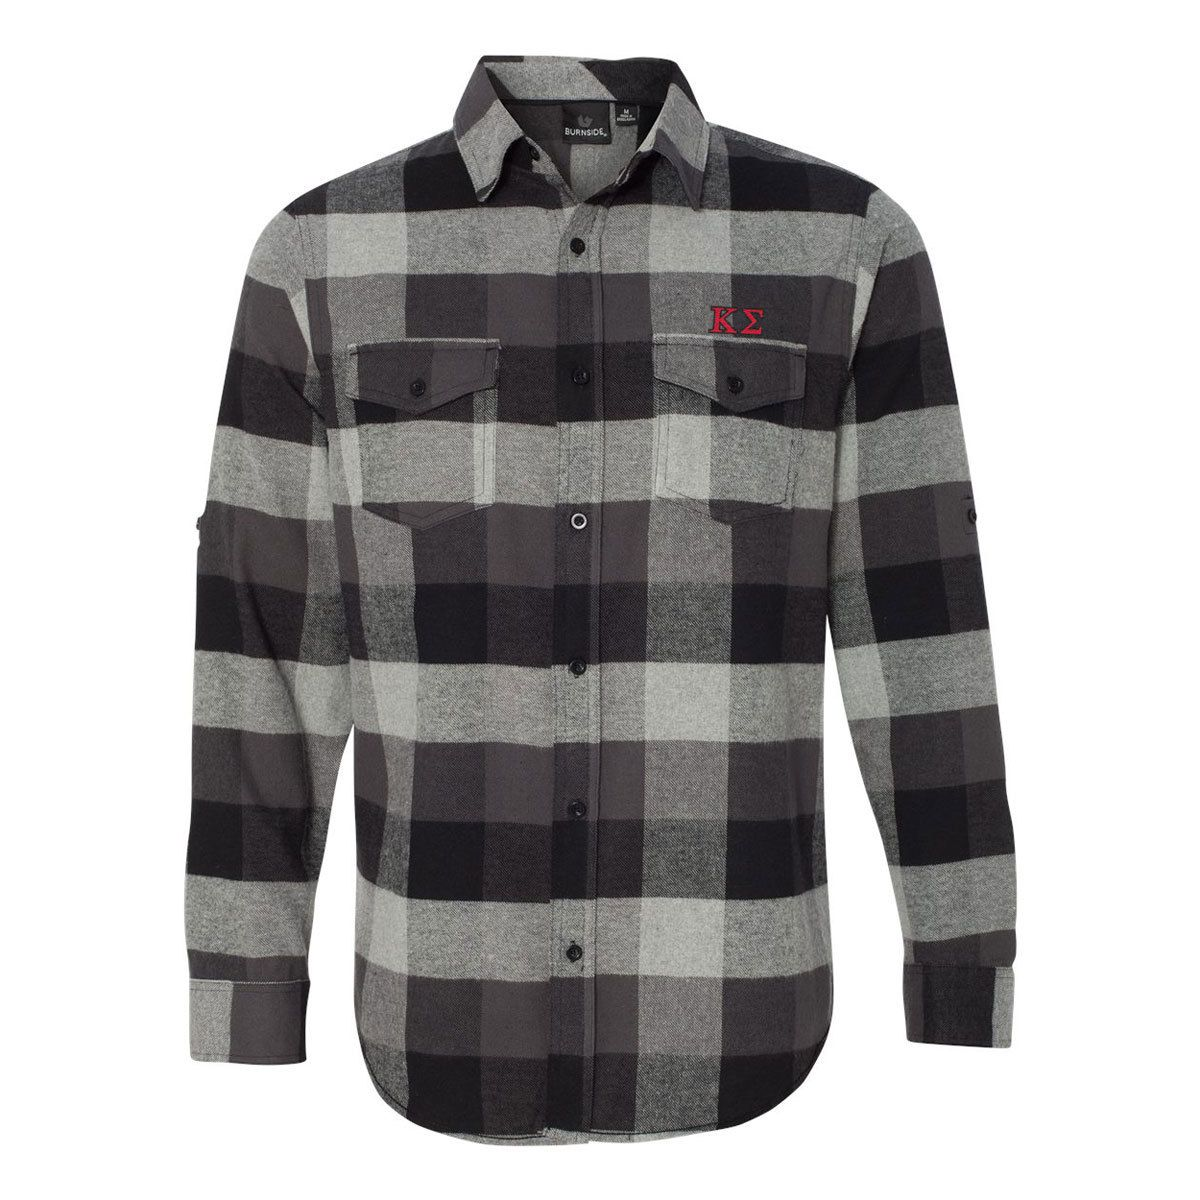 Flannel shirt black and grey  Kappa Sig Black Plaid Flannel Shirt  Top fraternities